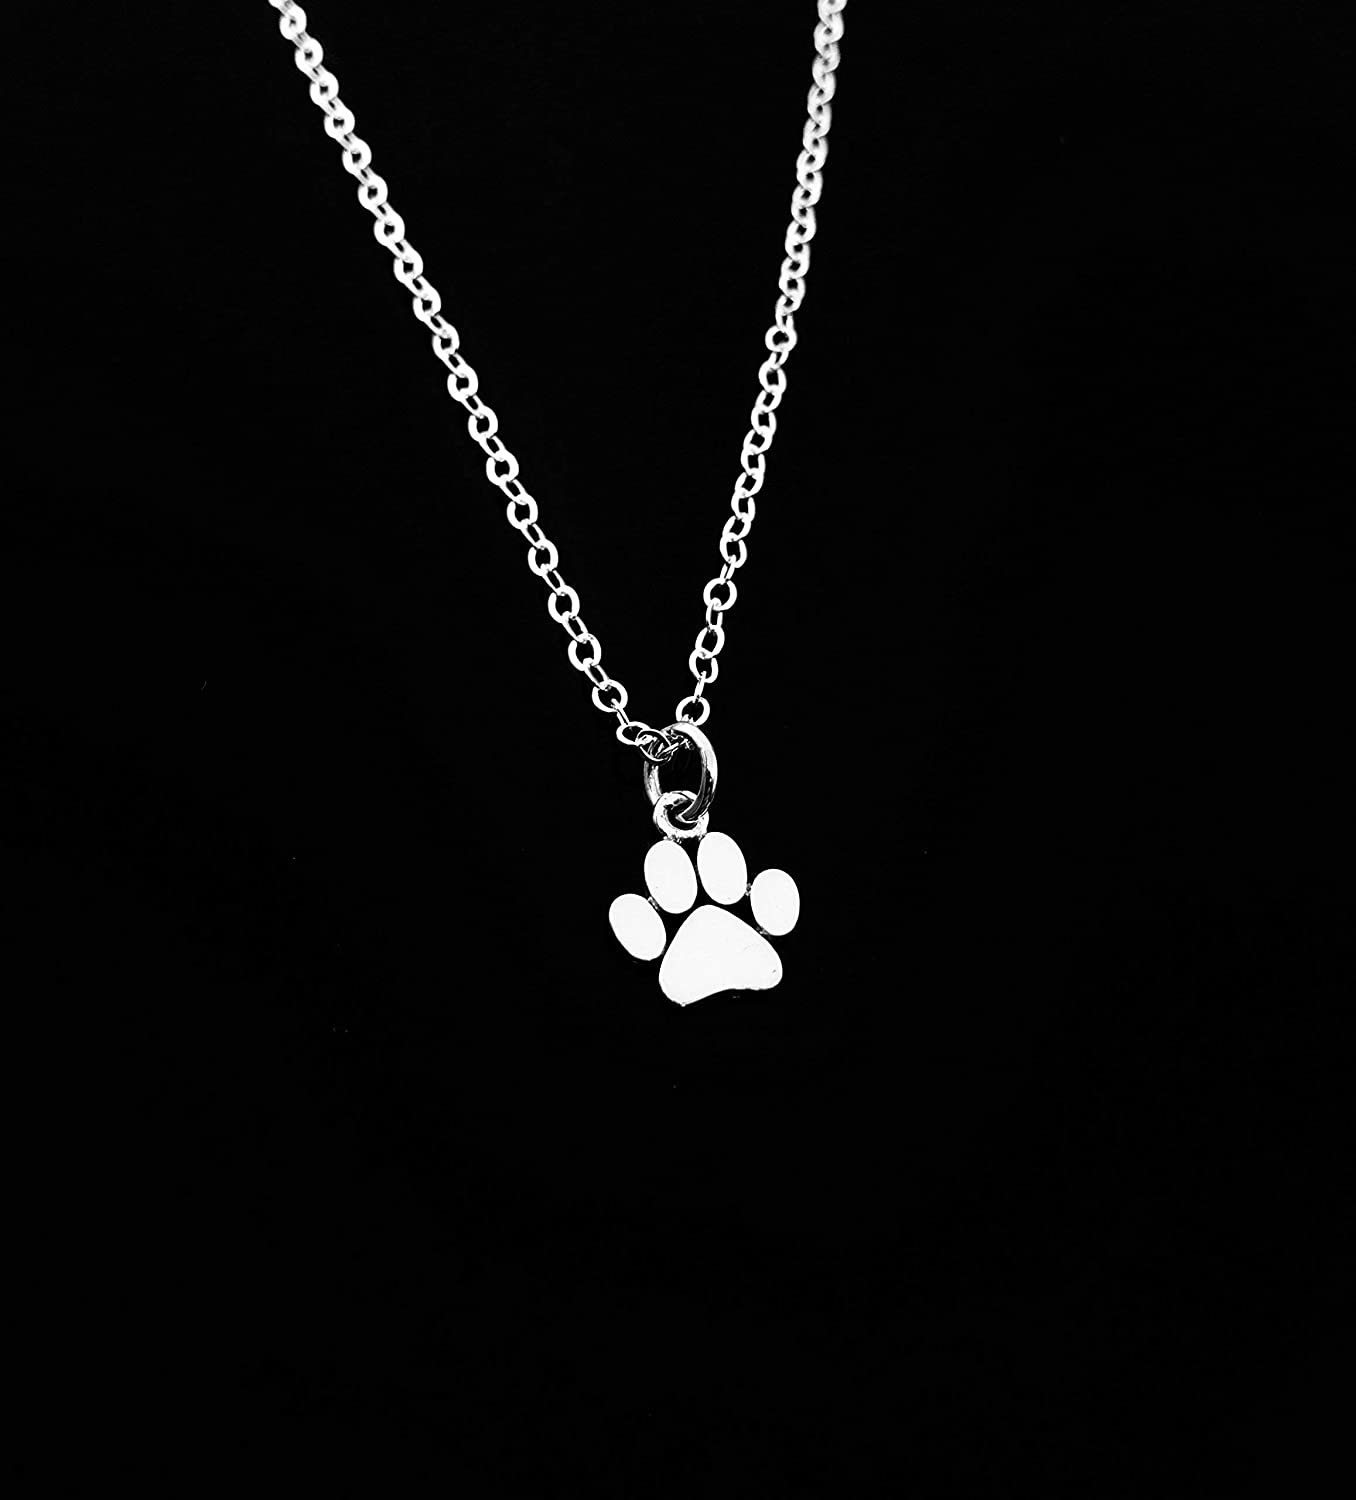 Silver Paw Print Charm Personalised Silver Heart Charm Pet memorial Gift for dog owner Paw print jewellery Unique gift for dog lover